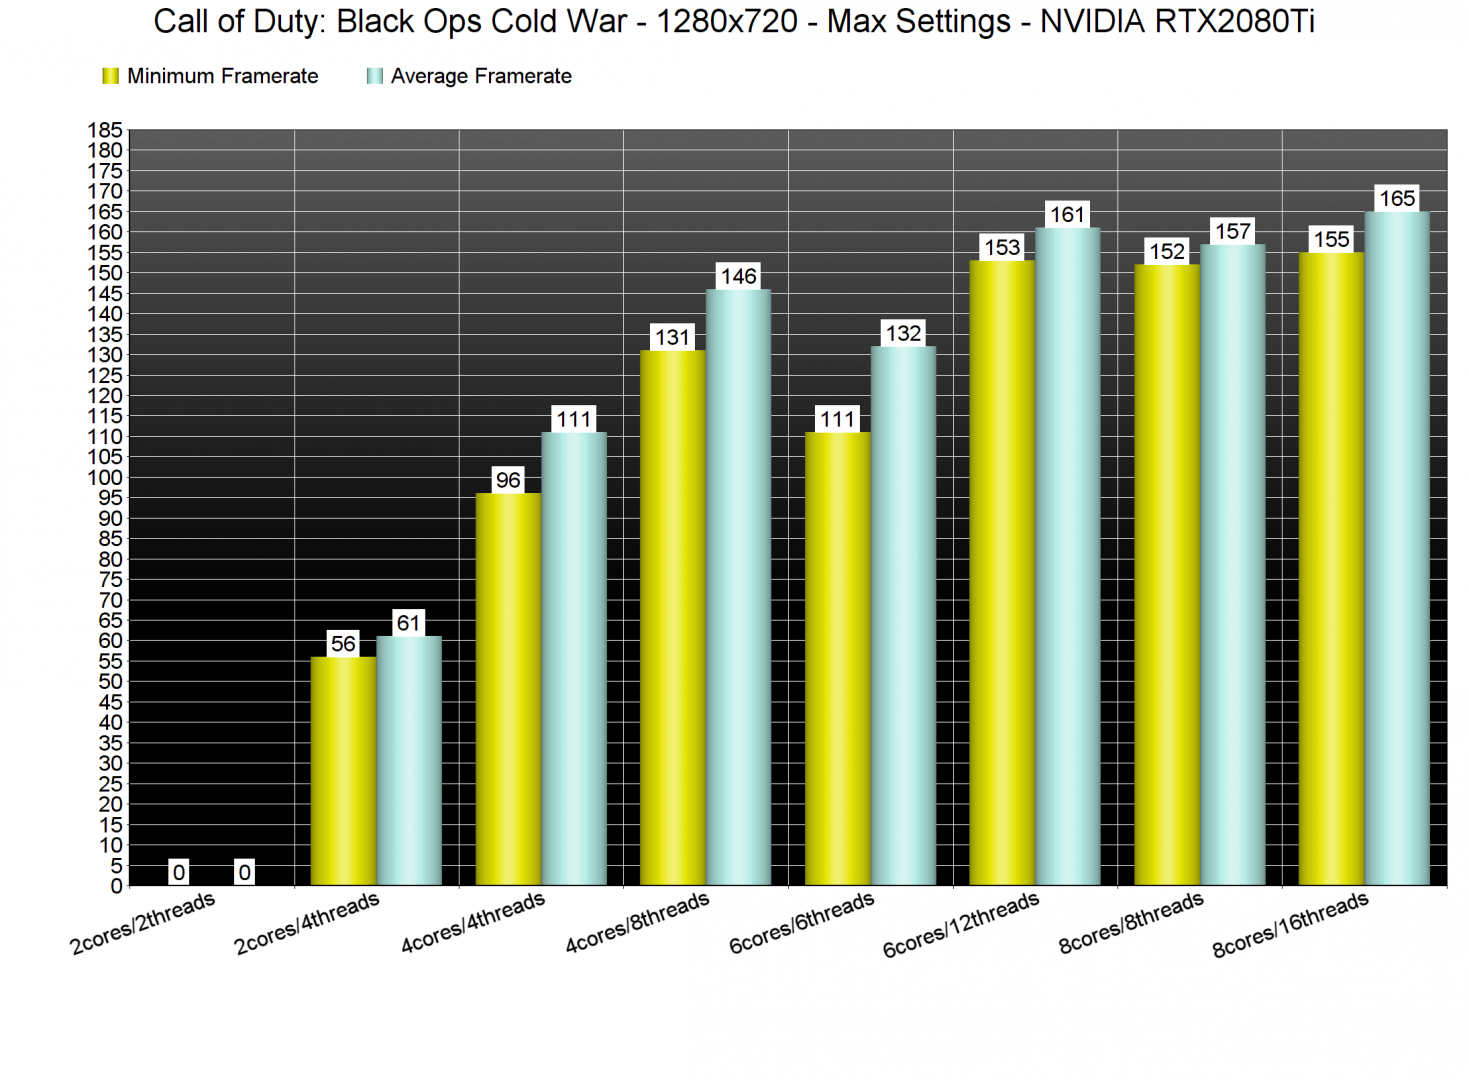 Call of Duty Black Ops Cold War CPU benchmarks-1